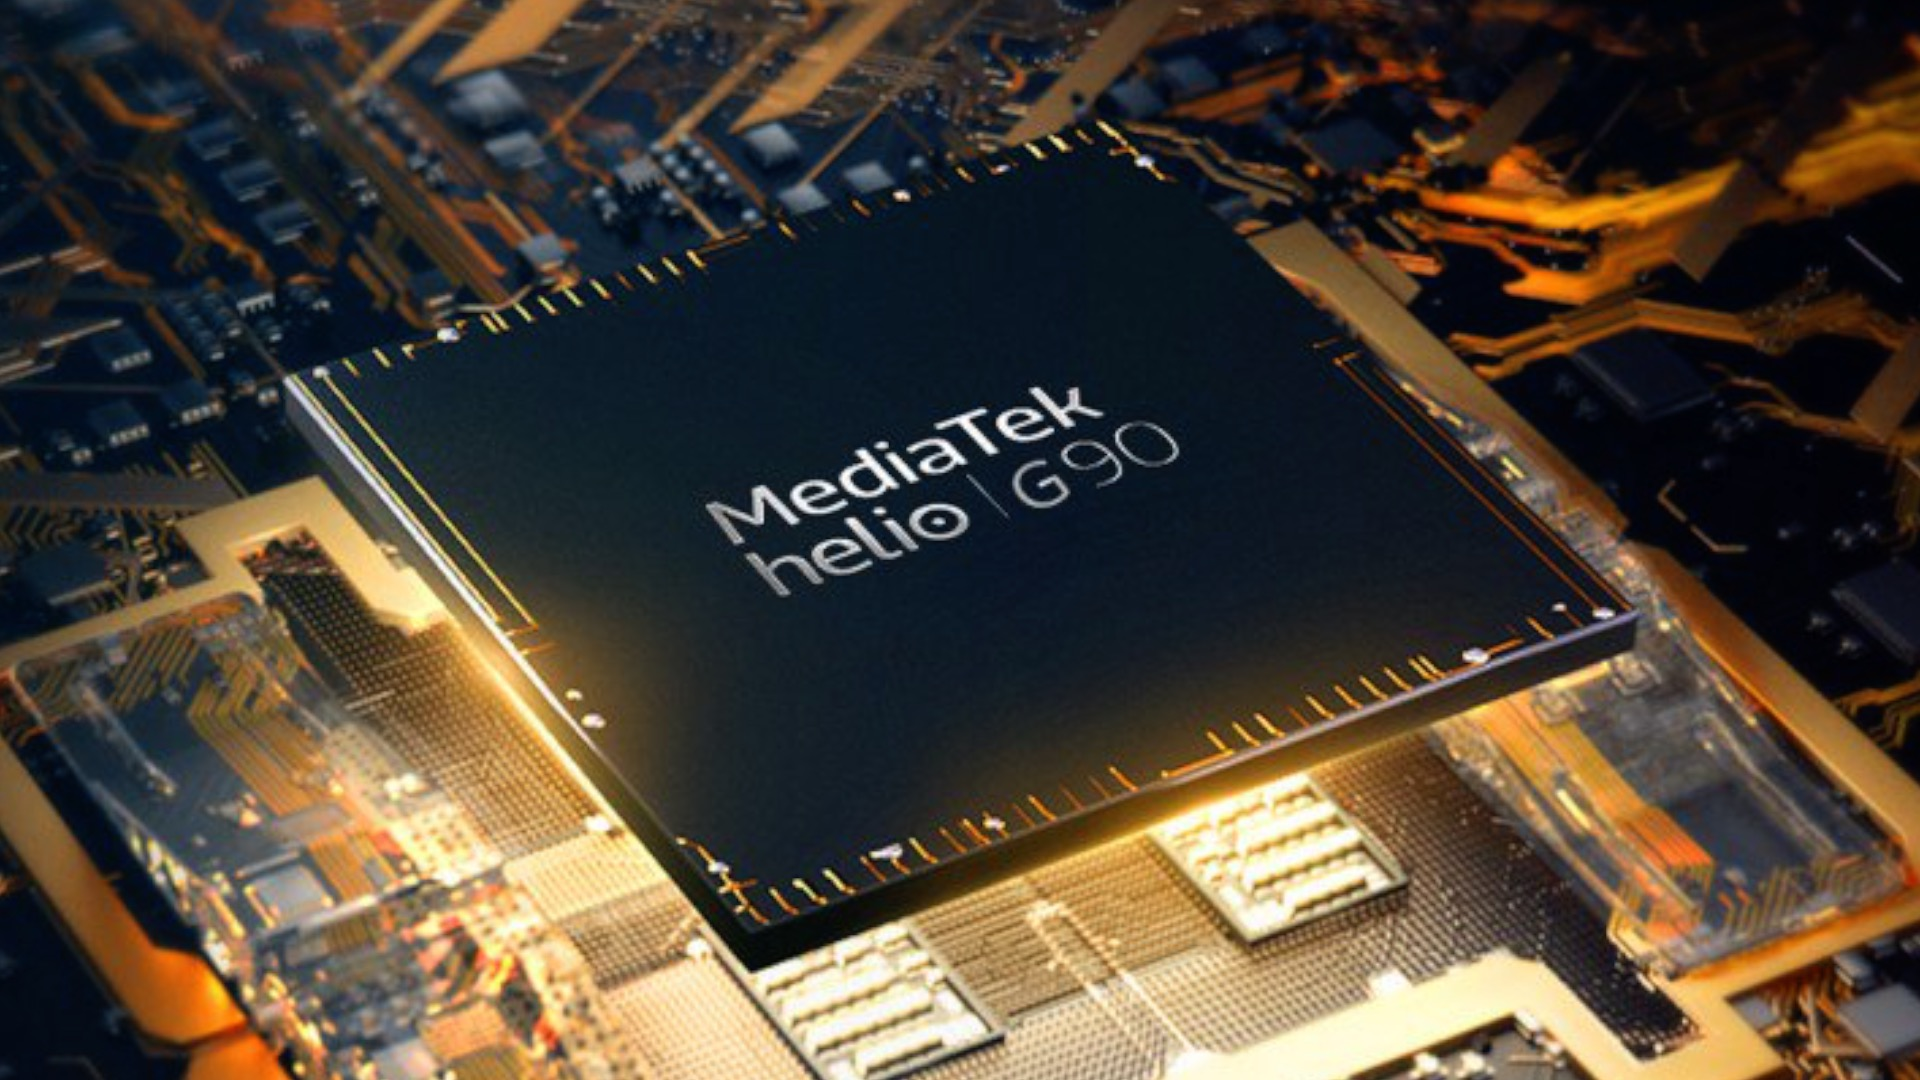 MediaTek Helio G90 e G90T